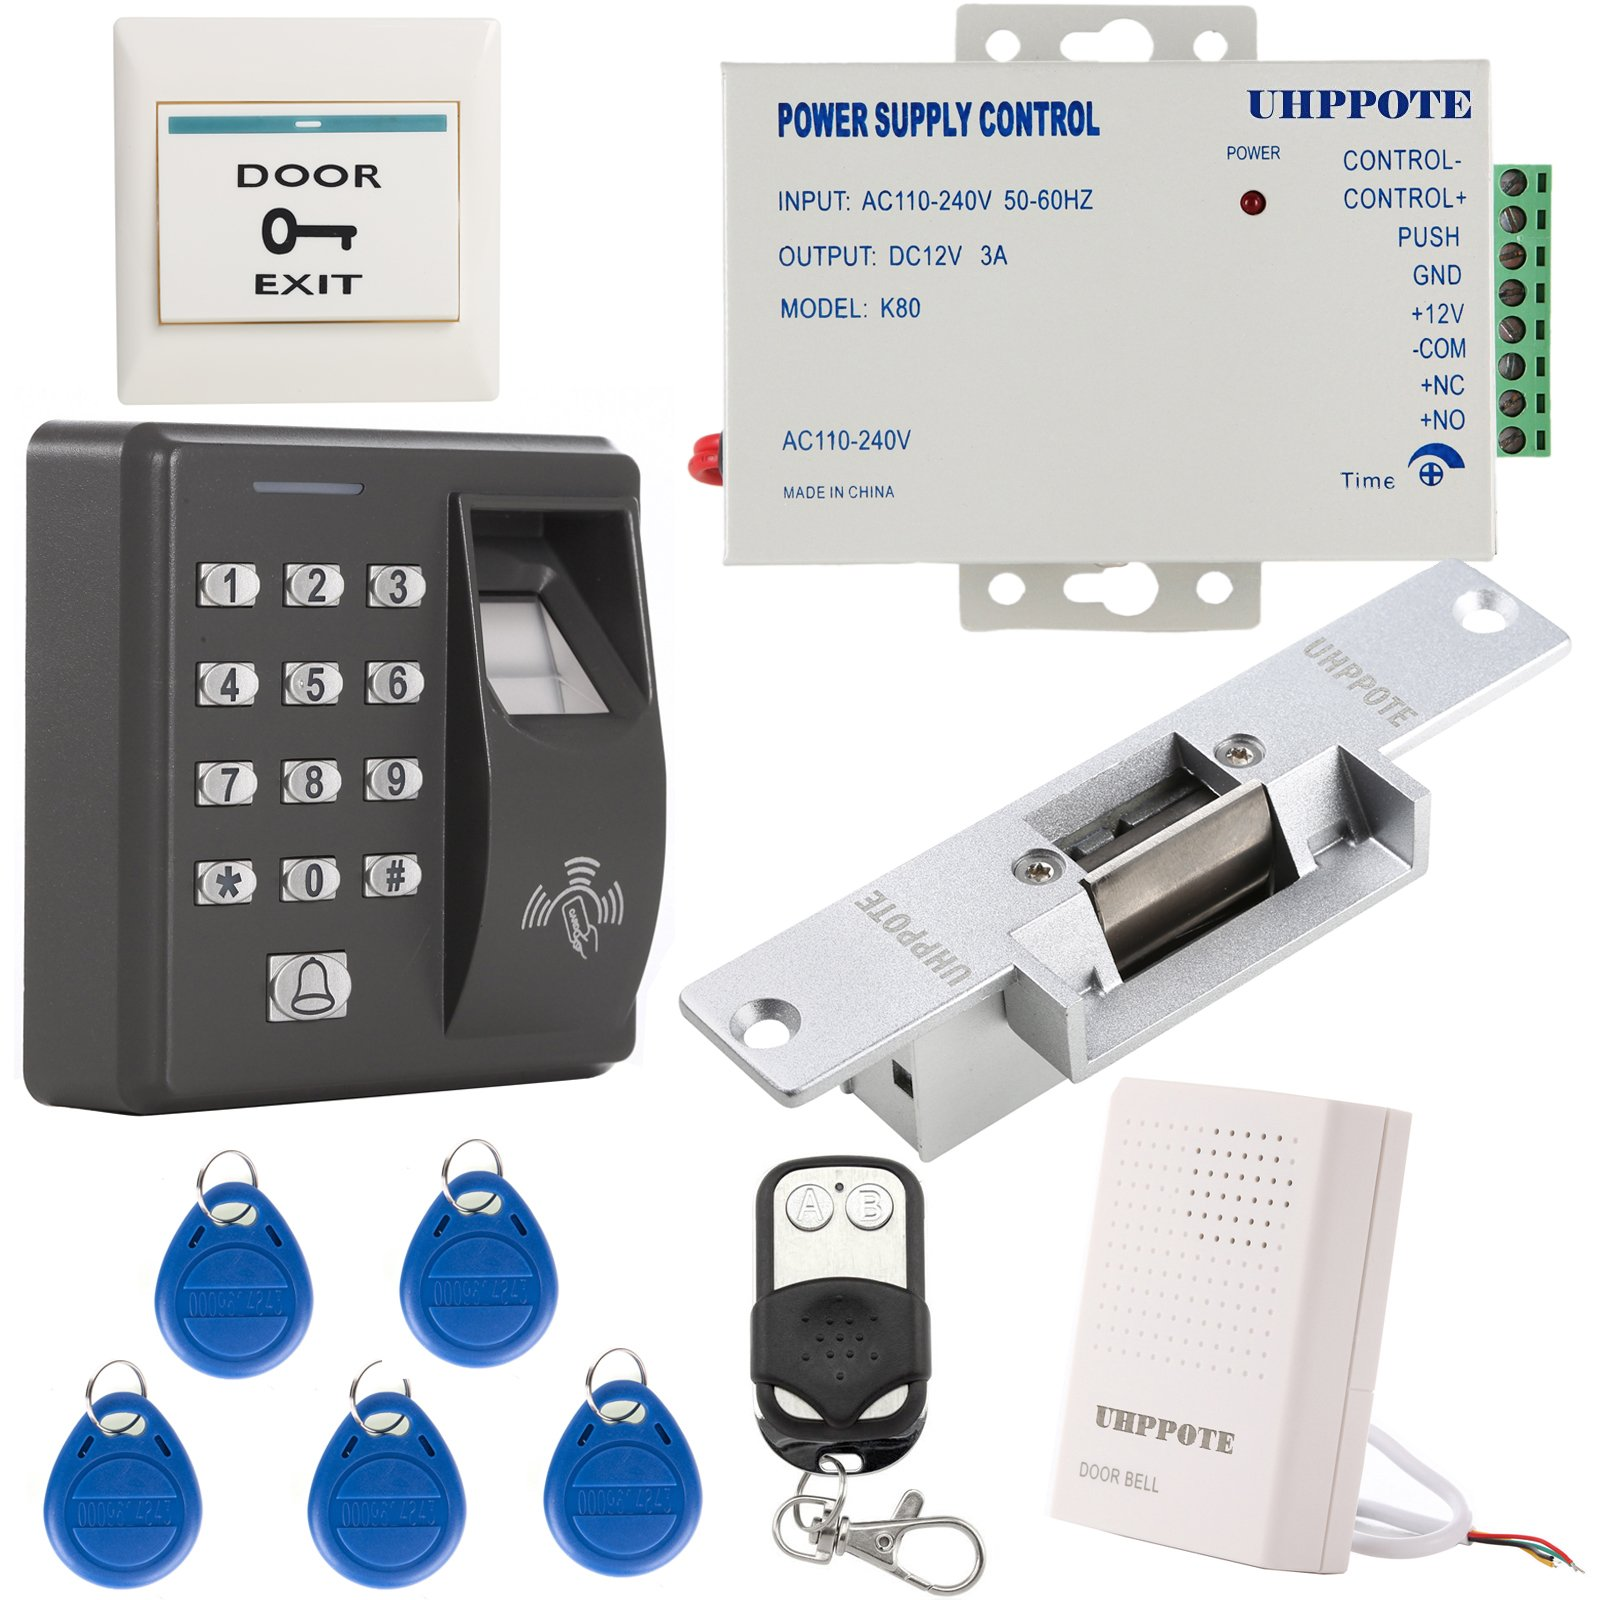 UHPPOTE Fingerprint RFID EM-ID Card Access Control System Kit With NO Strike Lock & Power Supply by UHPPOTE